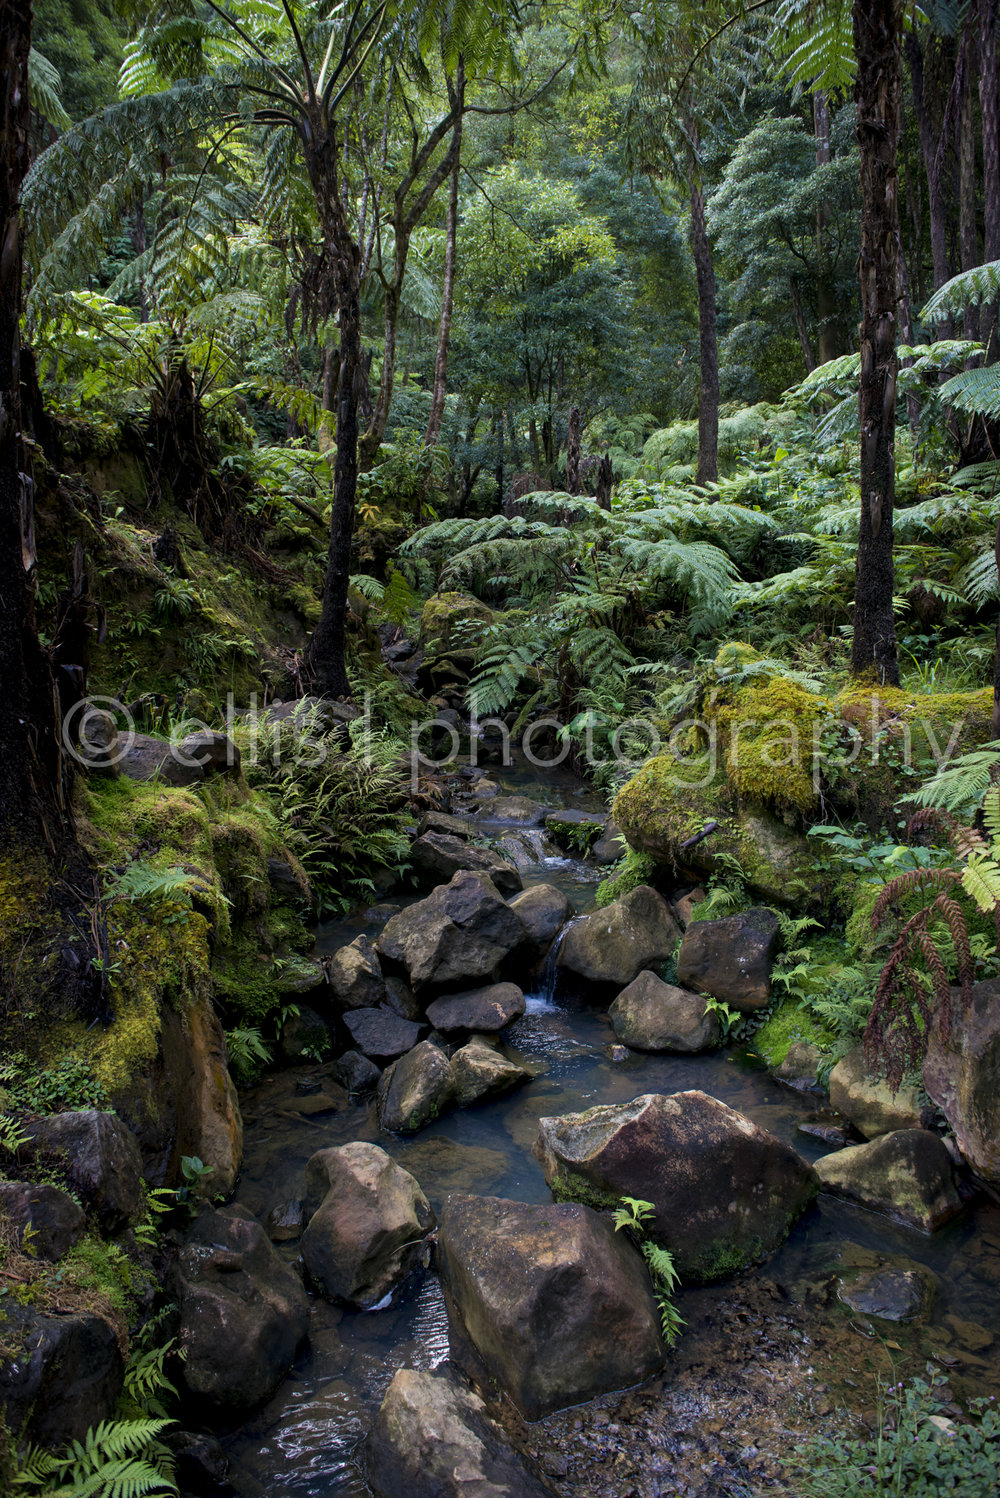 Small waterfall at Caldeira Velha. Beatiful scenery on the island of Sao Miguel, Azores. Little creek surrounded by greens. Picture taken by Ellis Photography